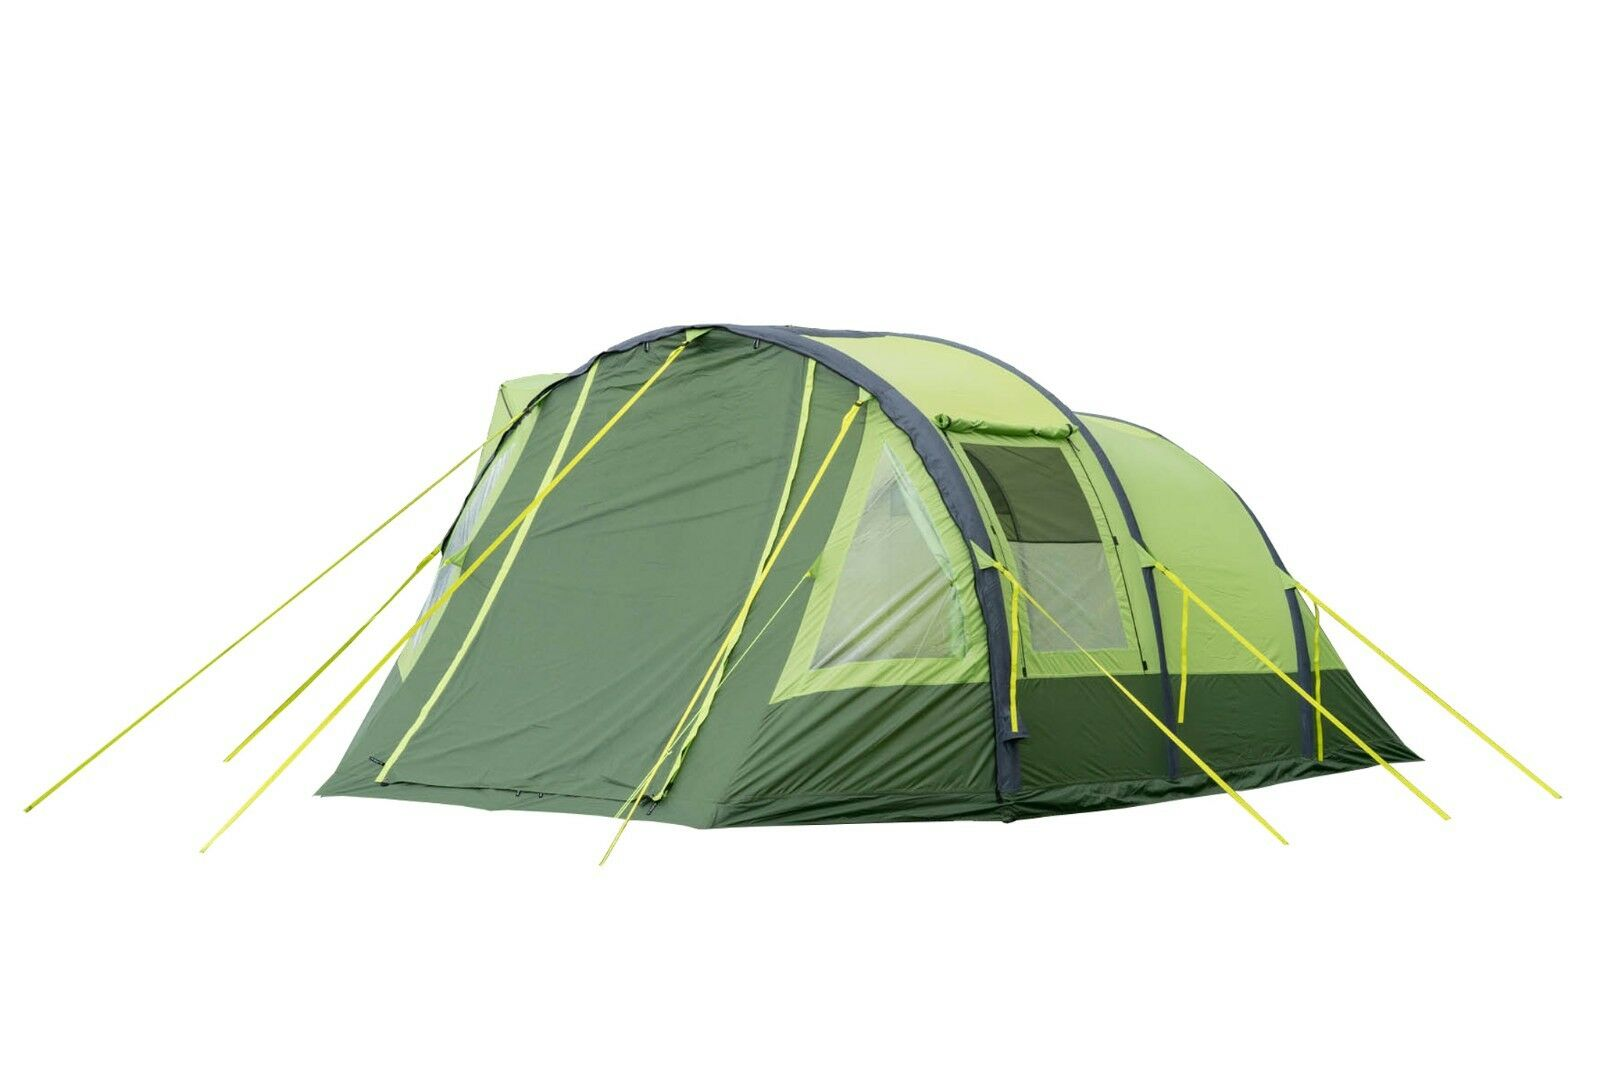 4 man inflatable camping Family tent Four Berth - OLPRO Abberley XL Breeze